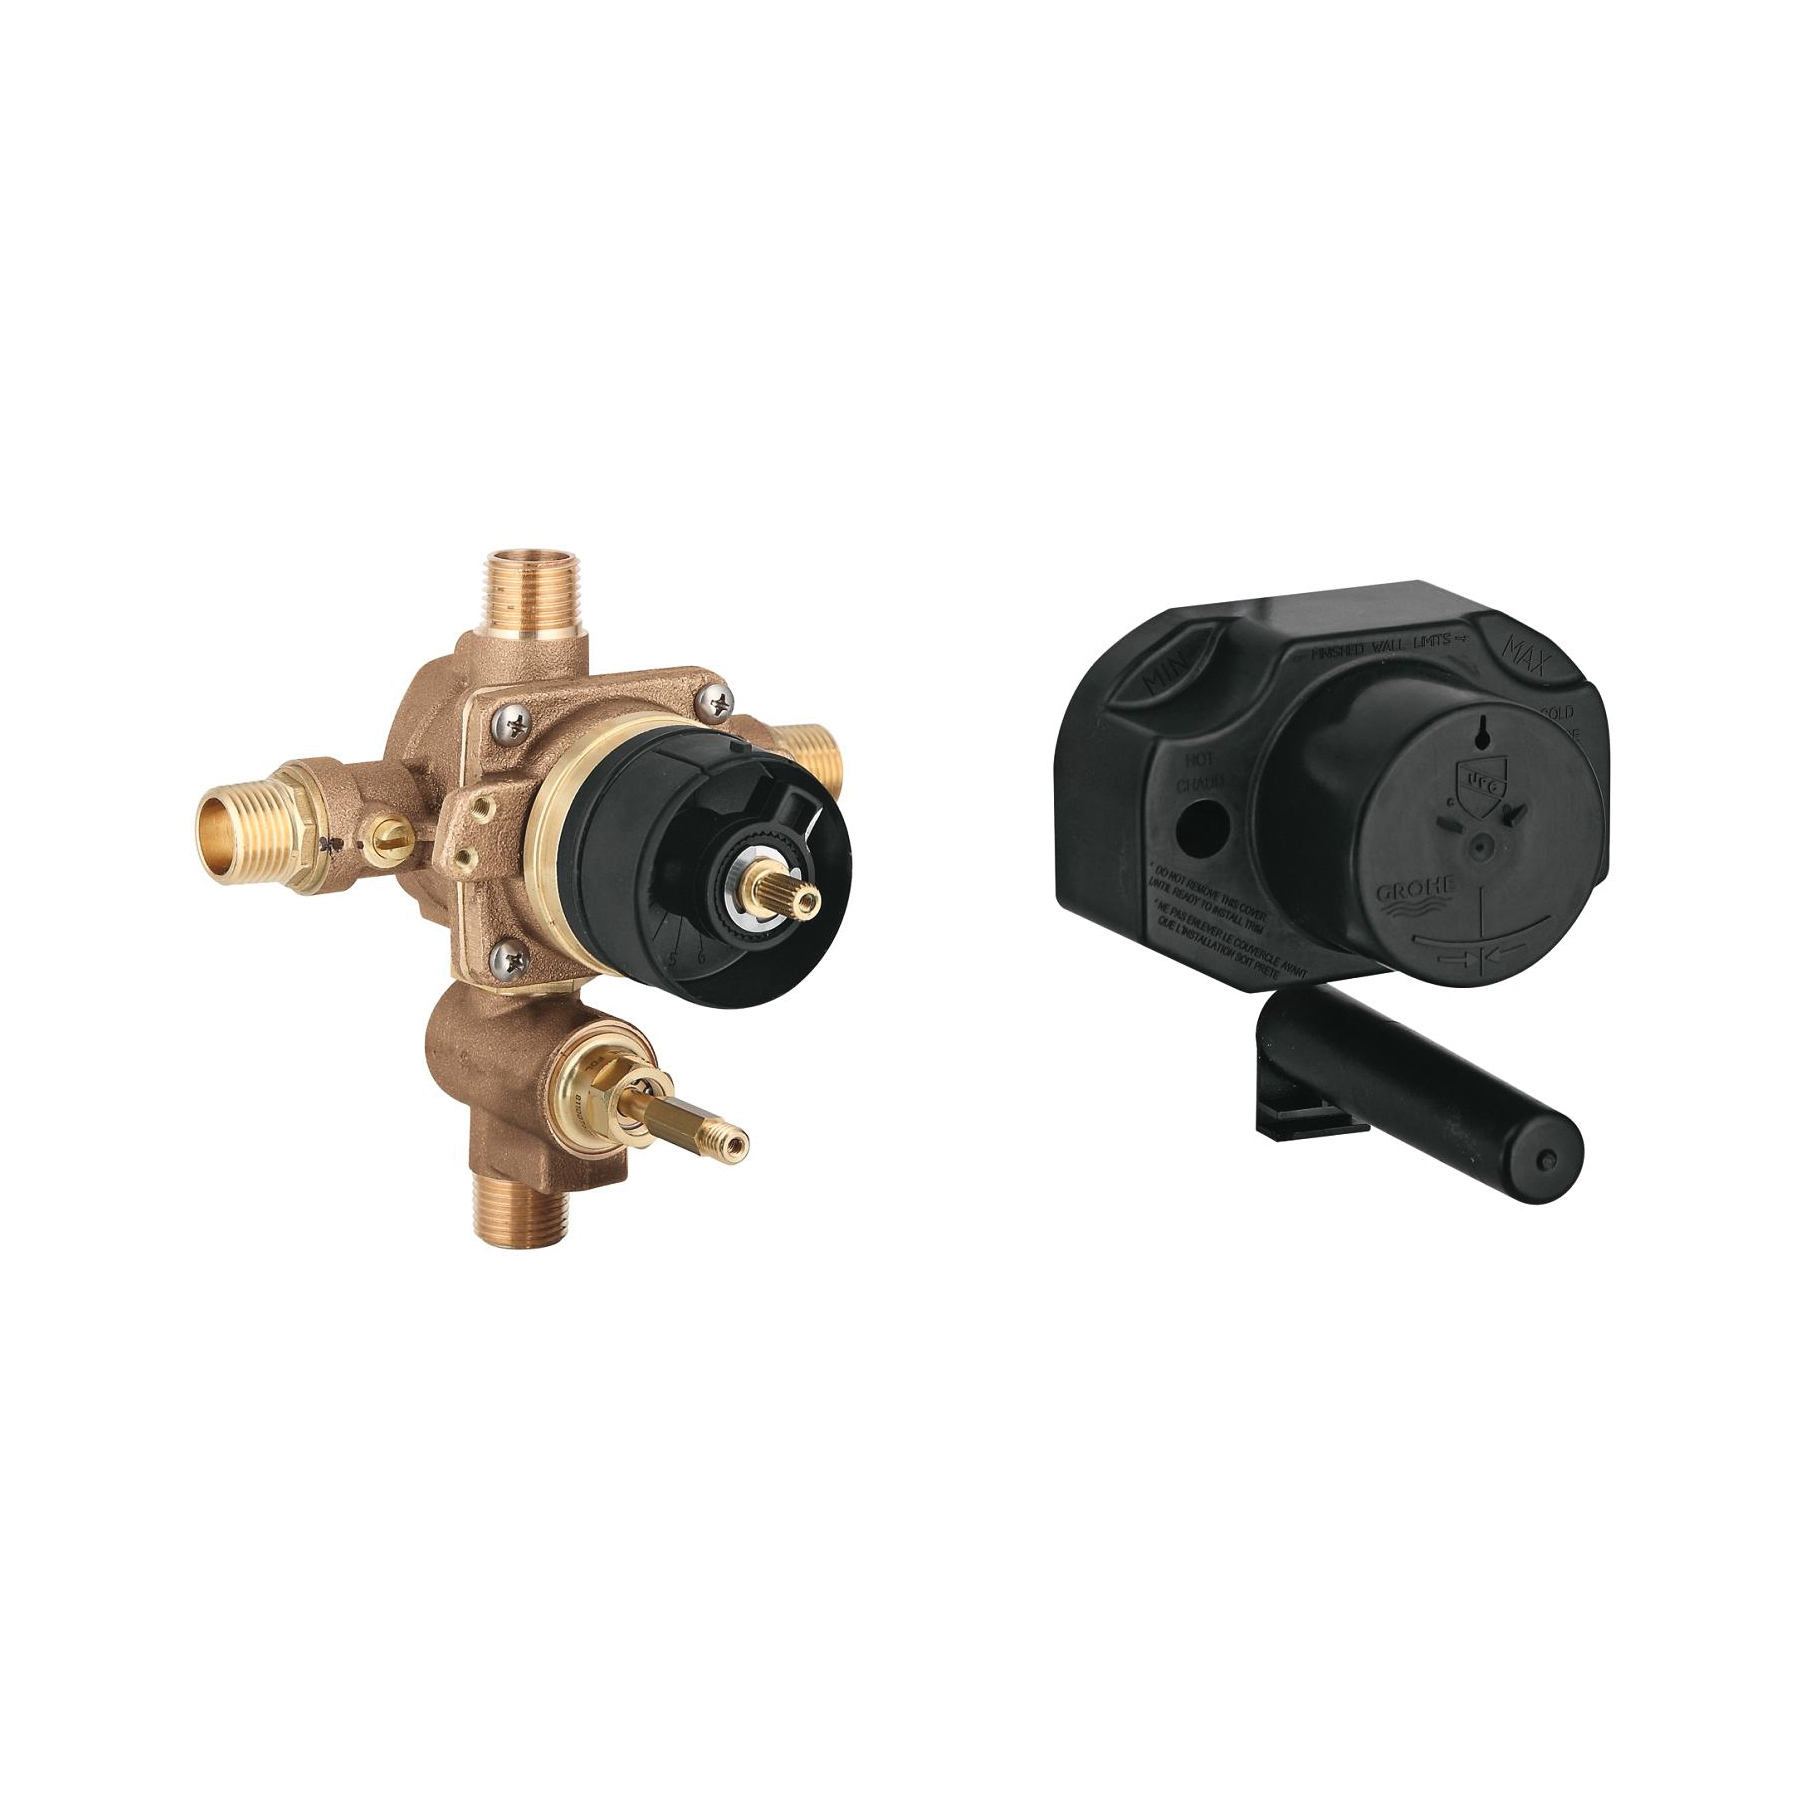 GROHE 35033000 Grohsafe™ Universal Rough-In Valve, 1/2 in C/MNPT Inlet x 1/2 in C/MNPT Outlet, Brass Body, Import